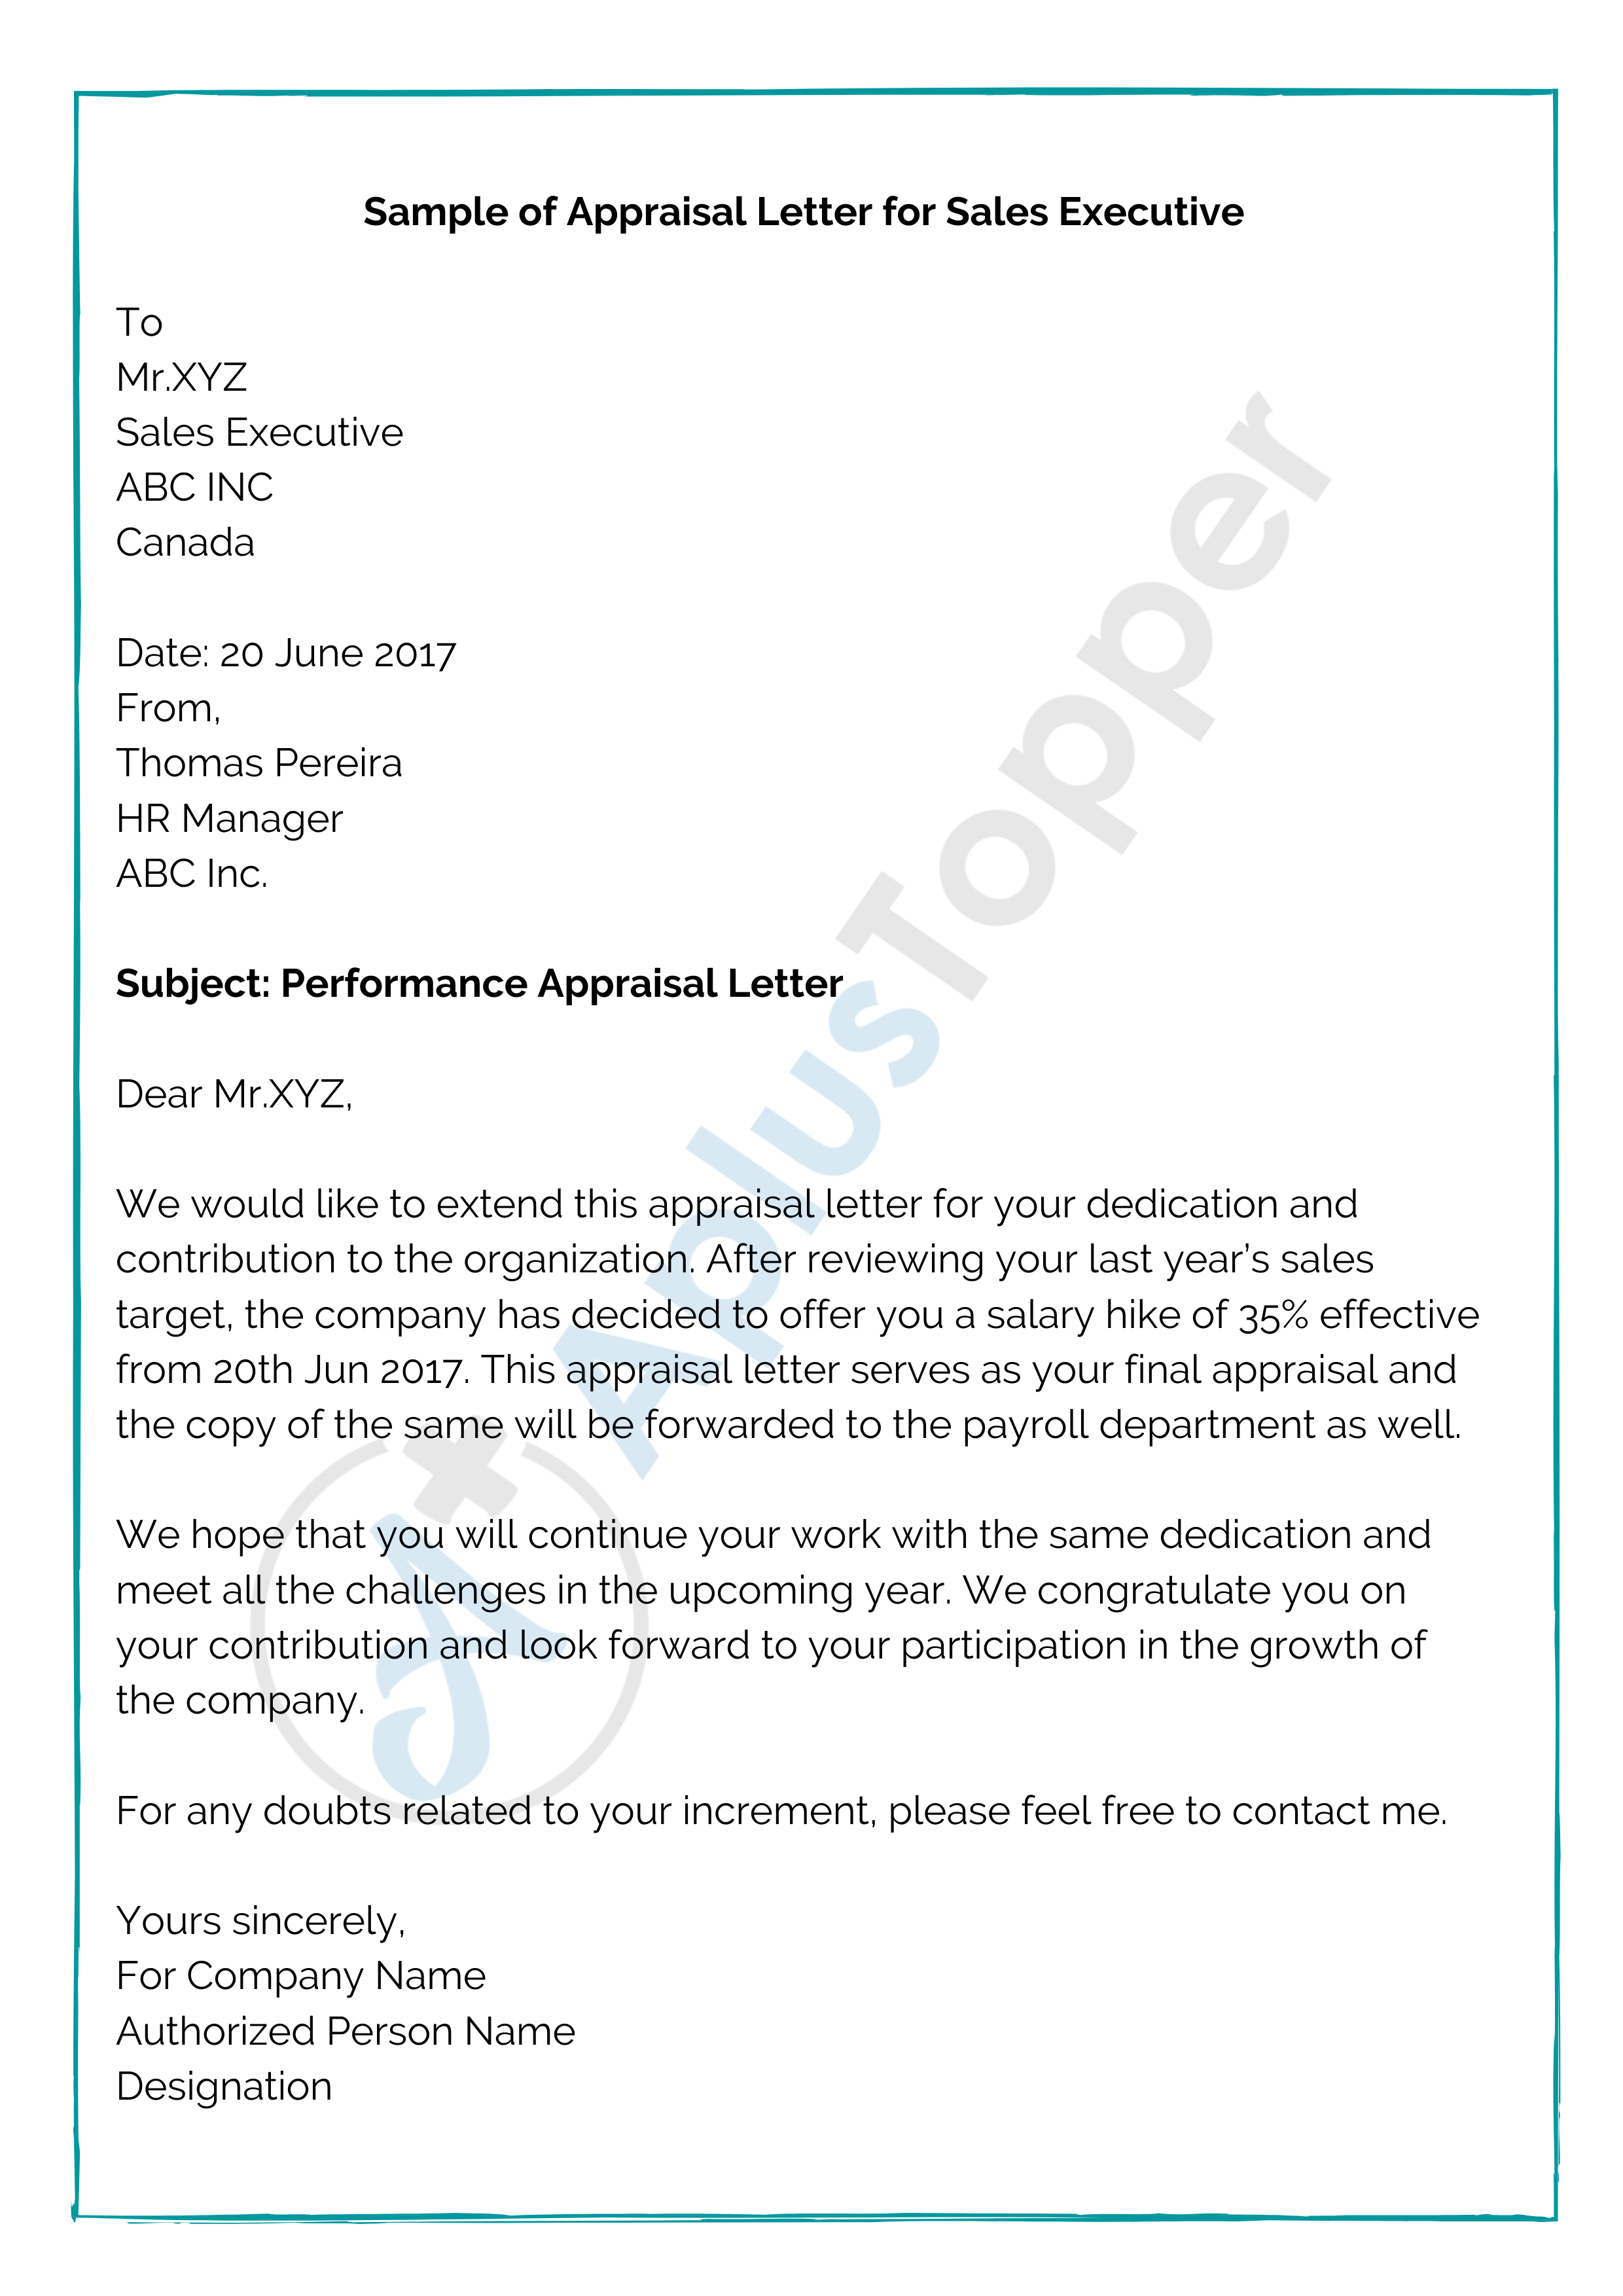 Sample of Appraisal Letter for Sales Executive